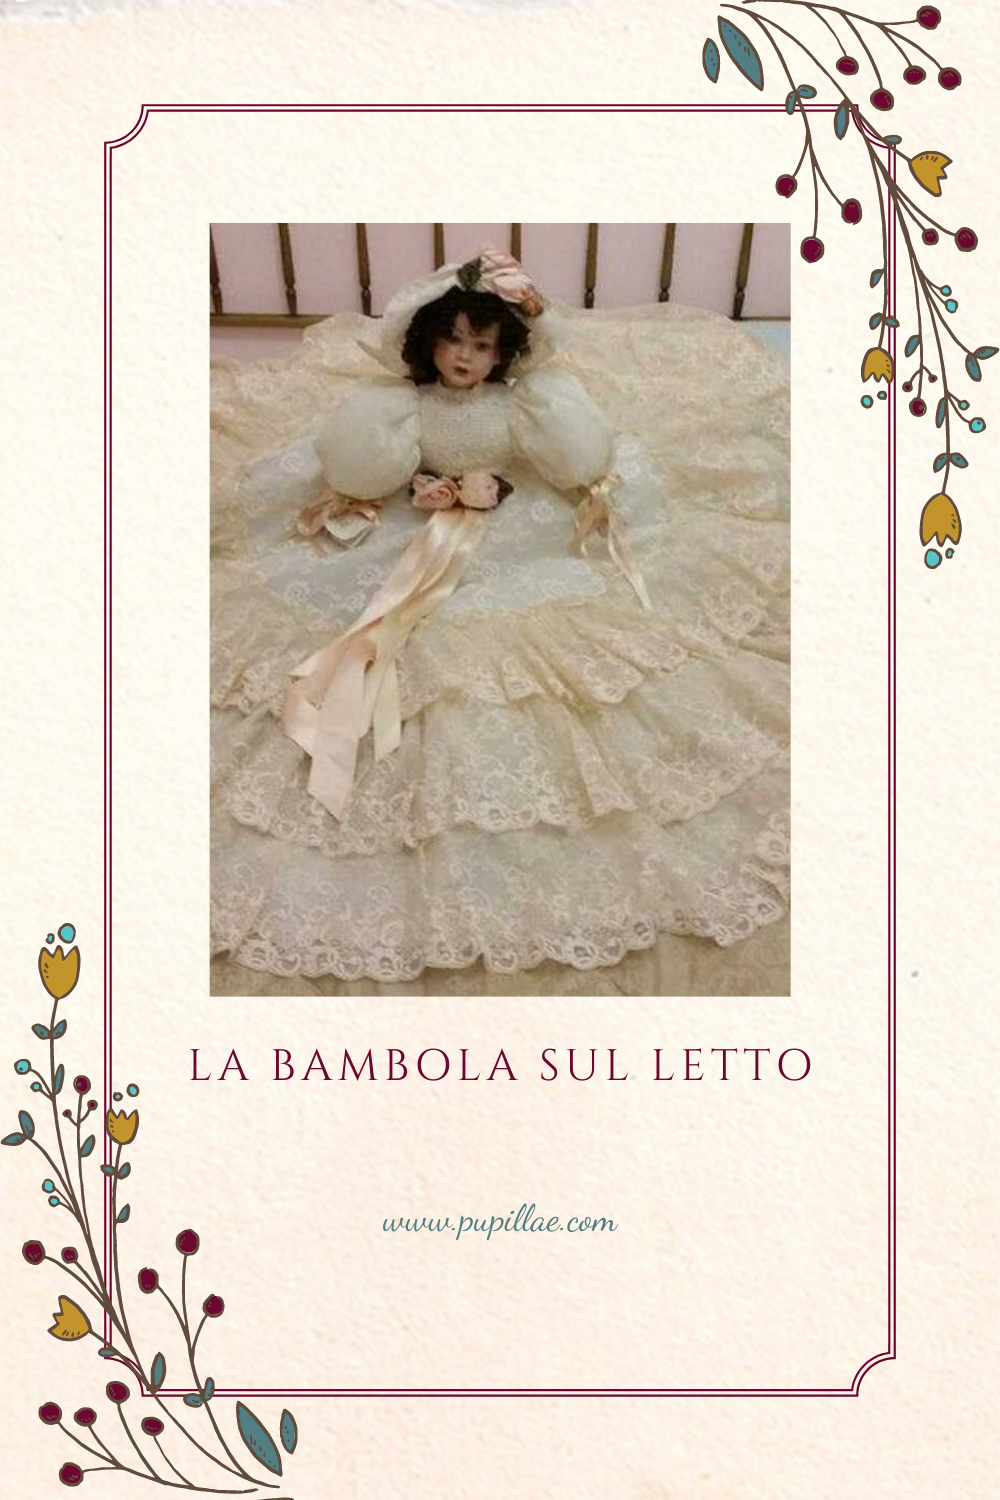 The doll on the bed